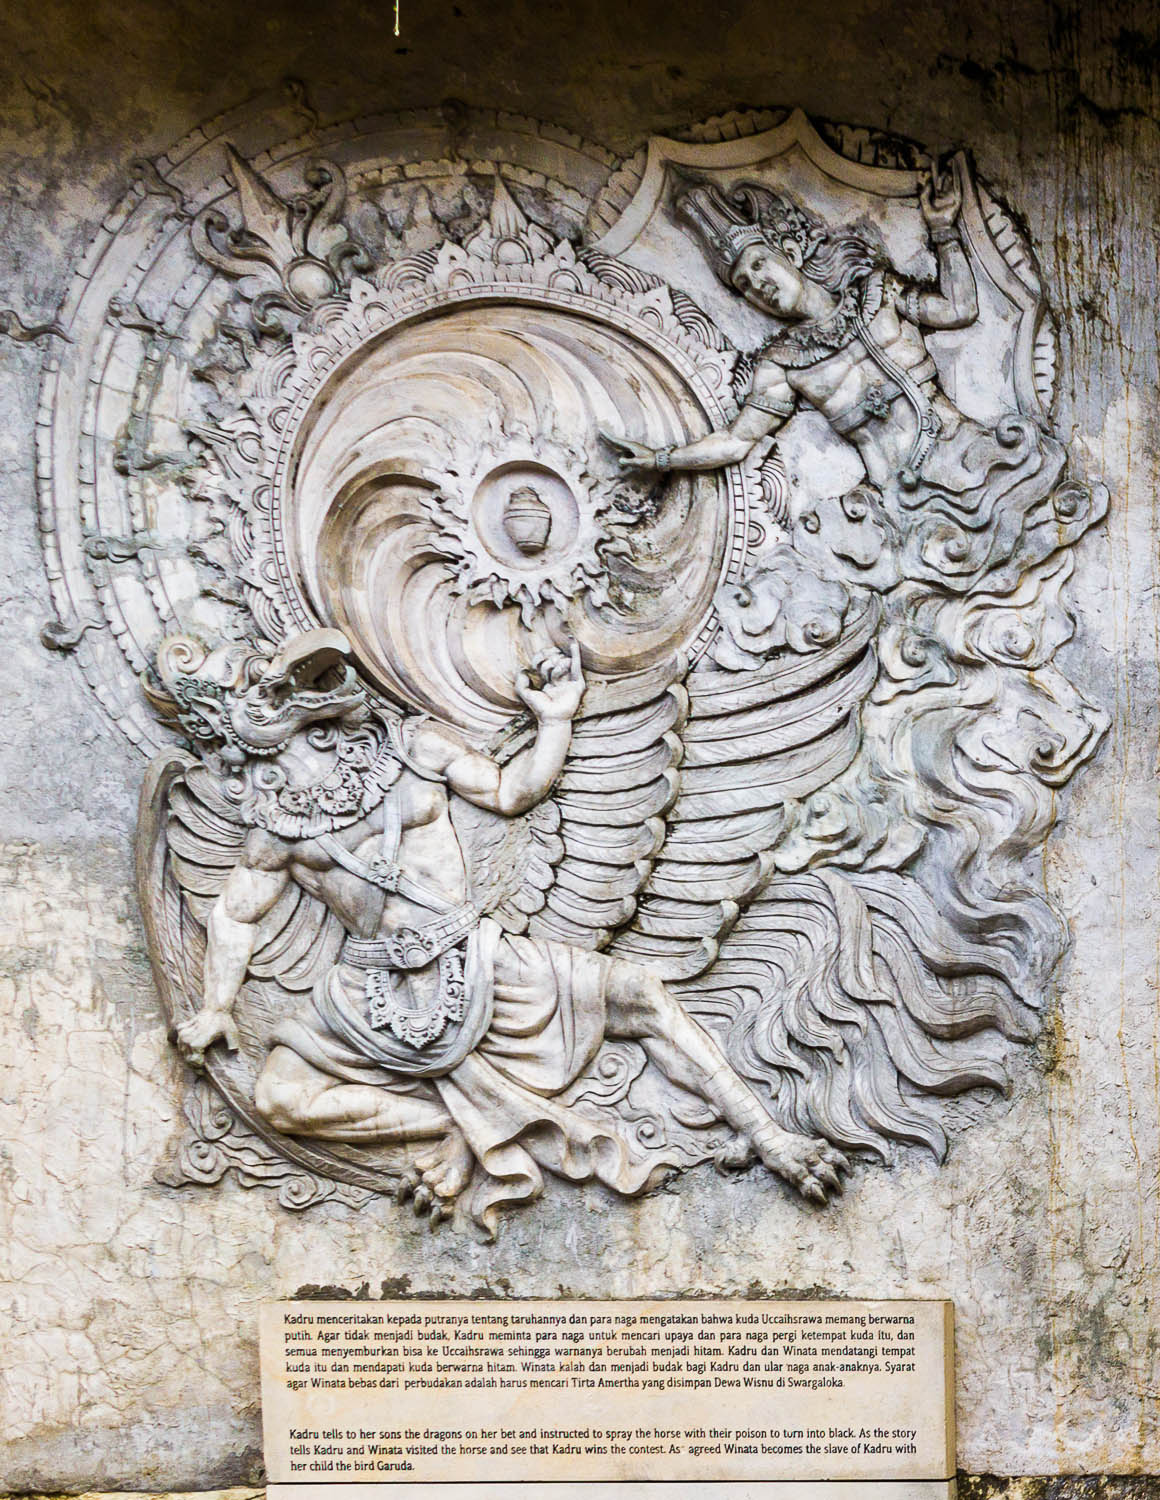 Carvings on the wall at Garuda Wisnu Kencana GWK, Bali